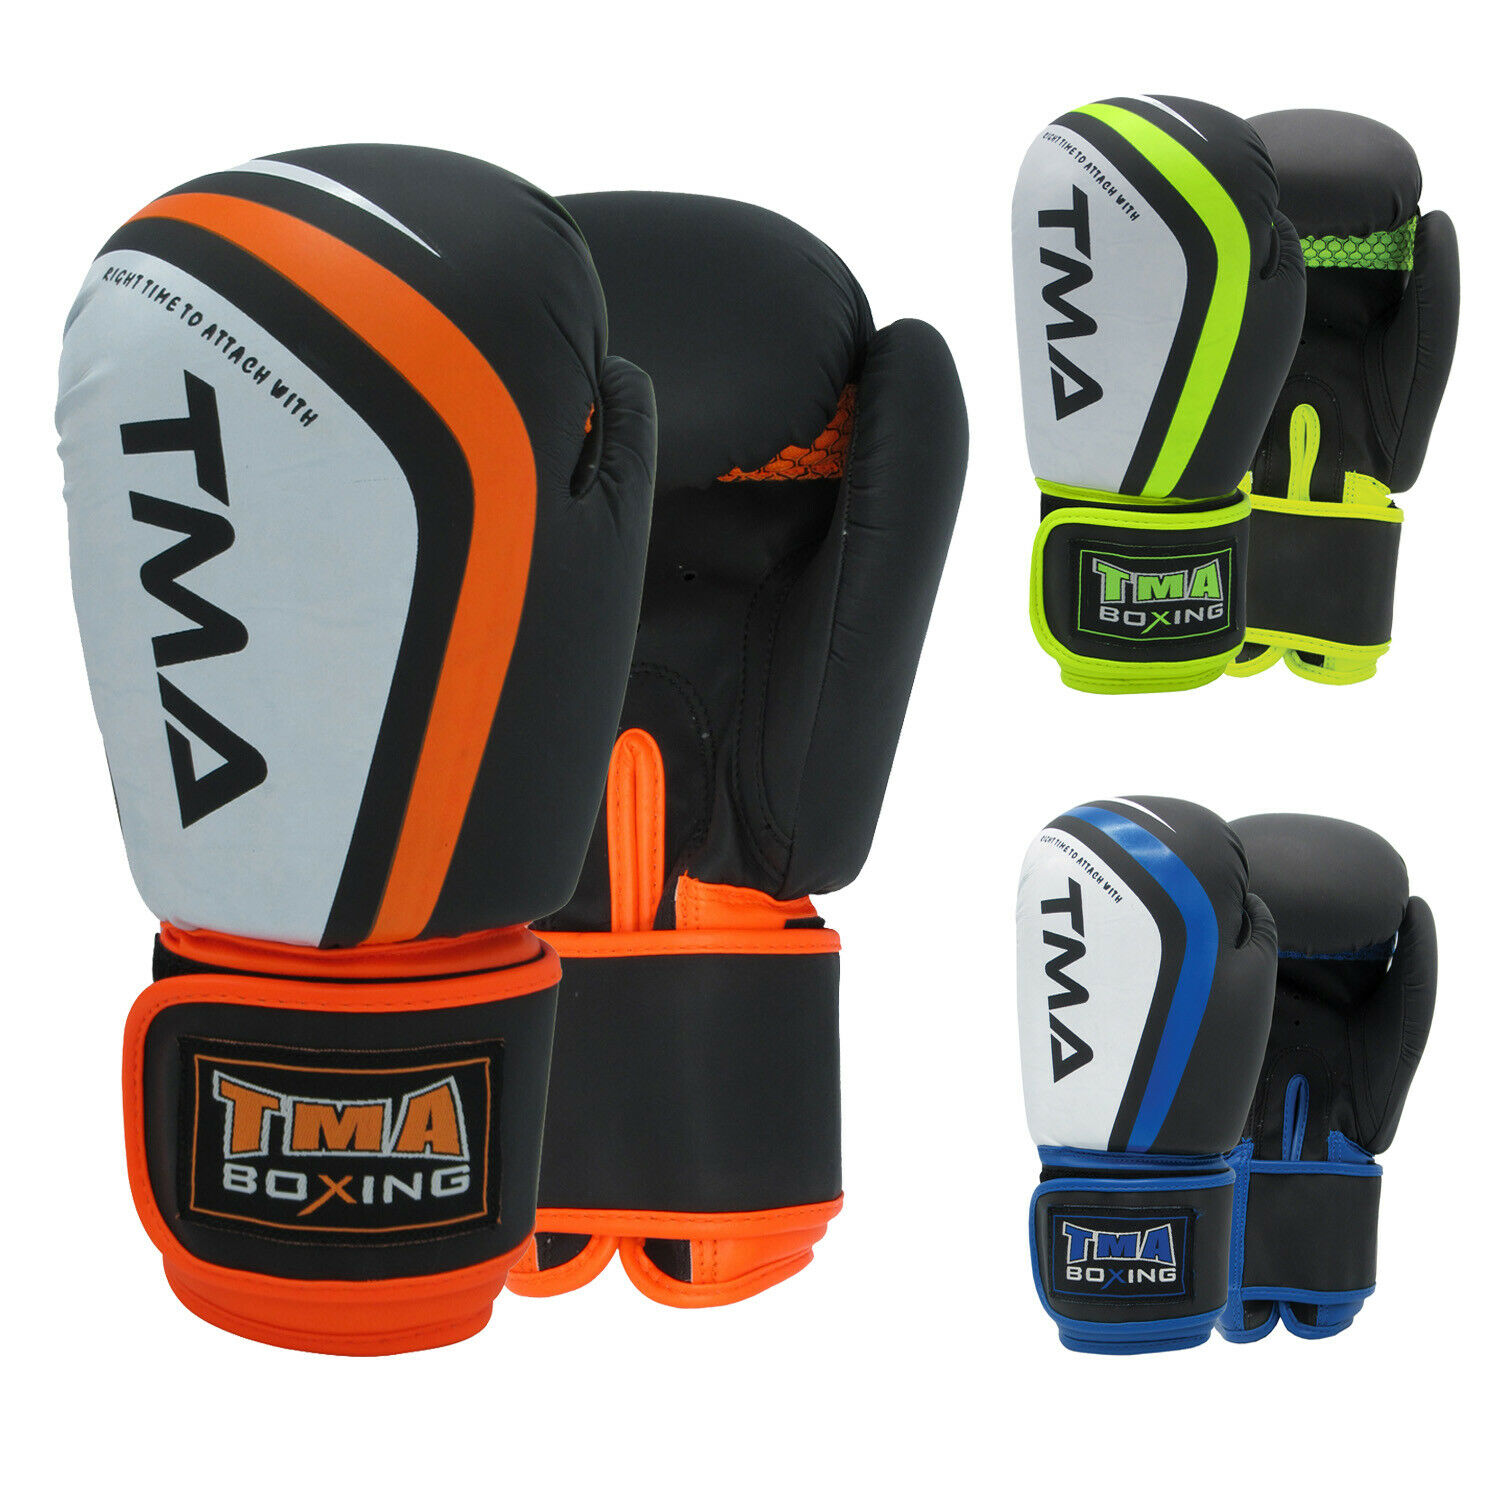 TurnerMAX Boxing Gloves Sparring Muay Thai Training Punching Bag Mitts Kickboxing Fight MMA